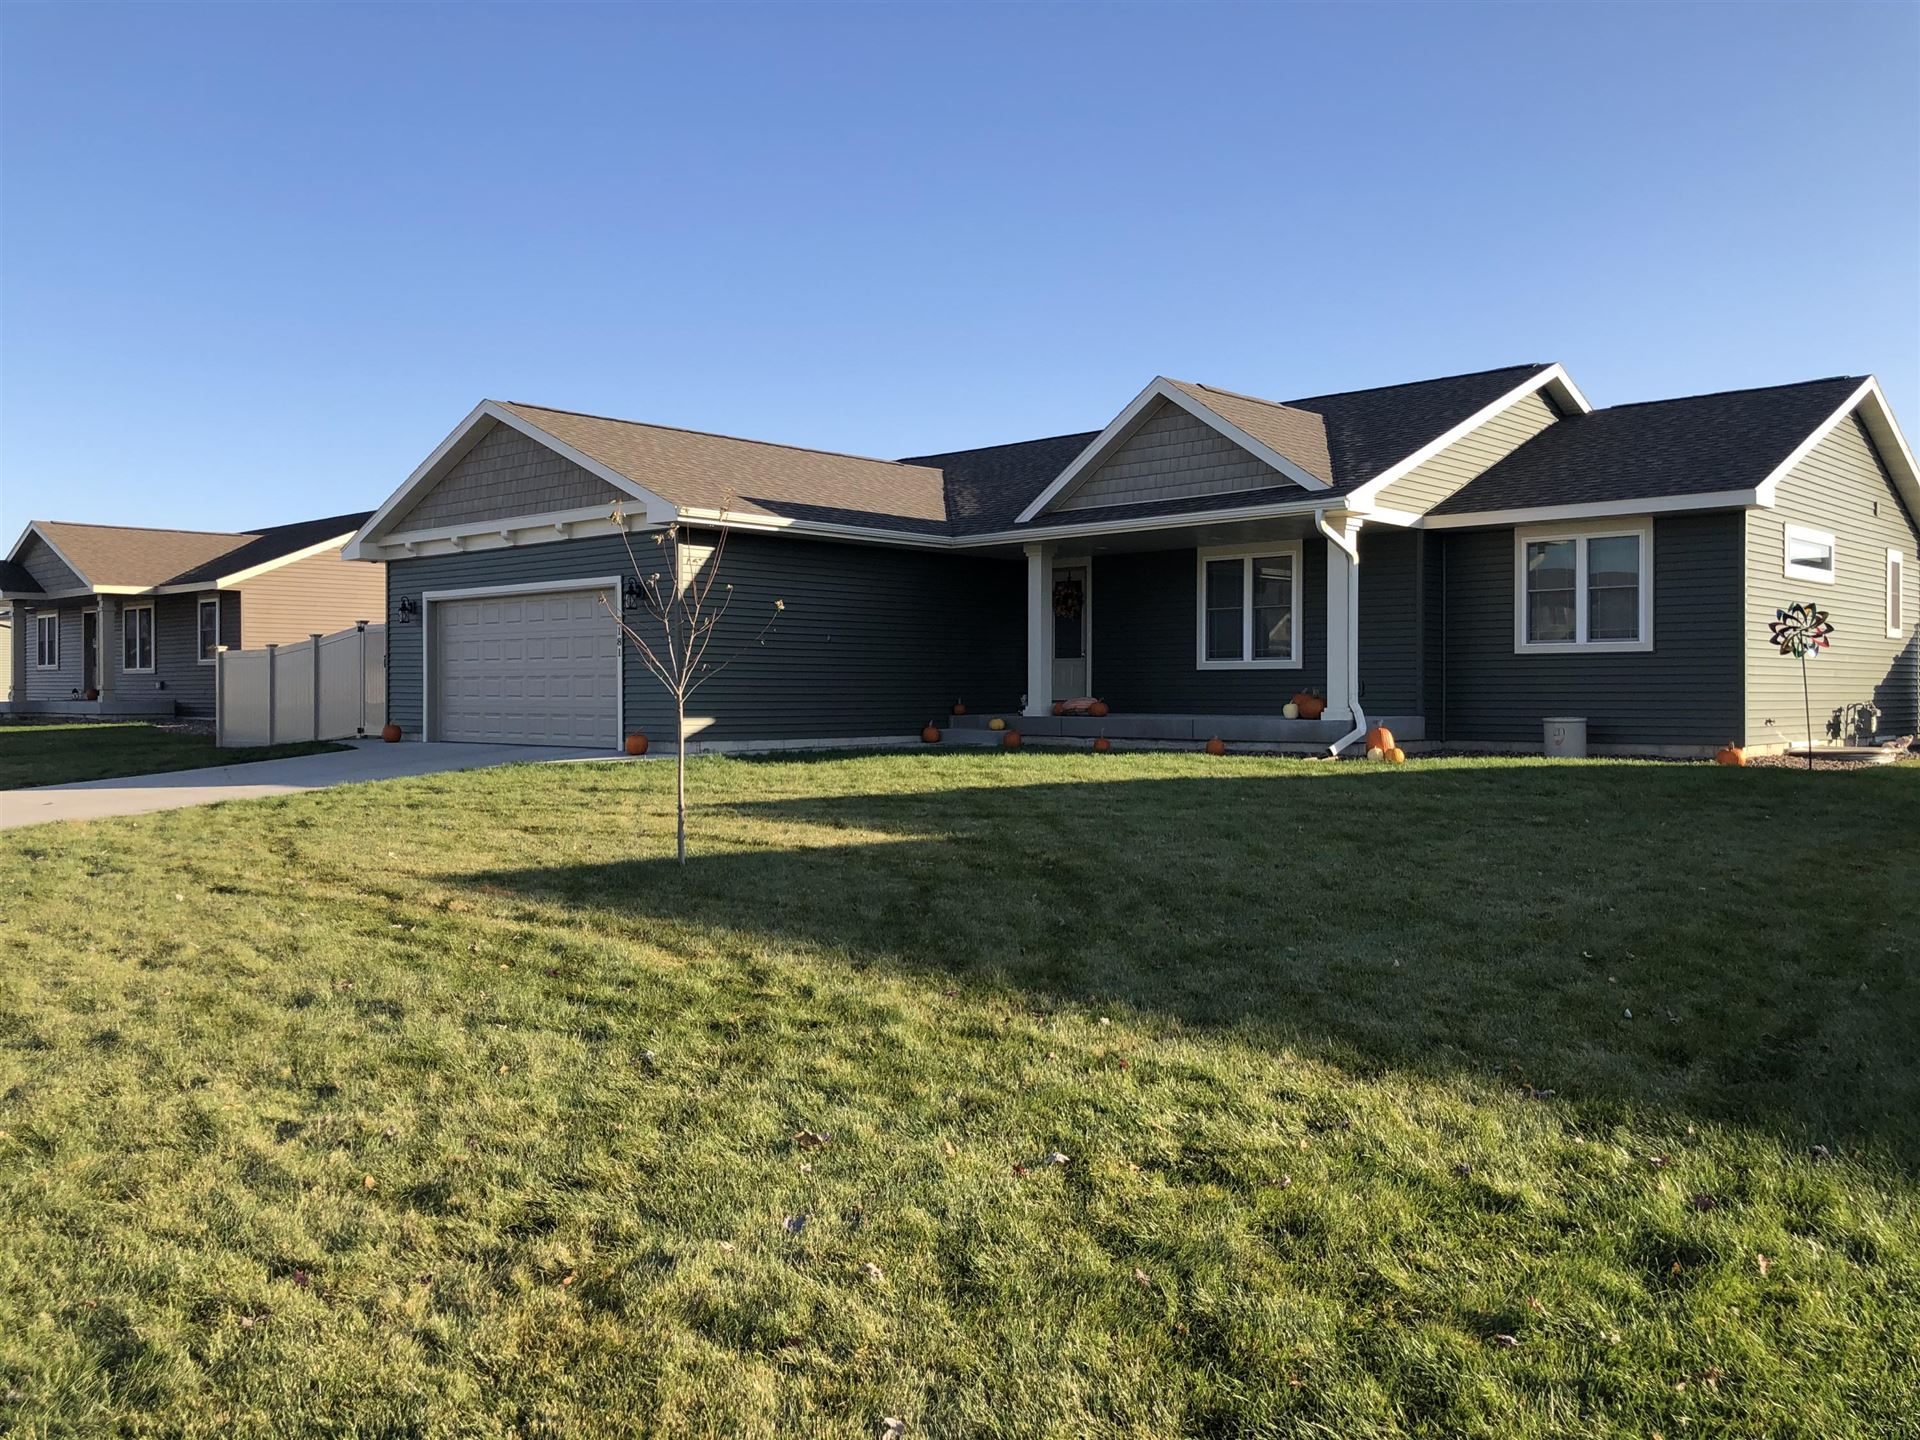 2181 Remington Ave, Sparta, WI 54656 - MLS#: 1727771